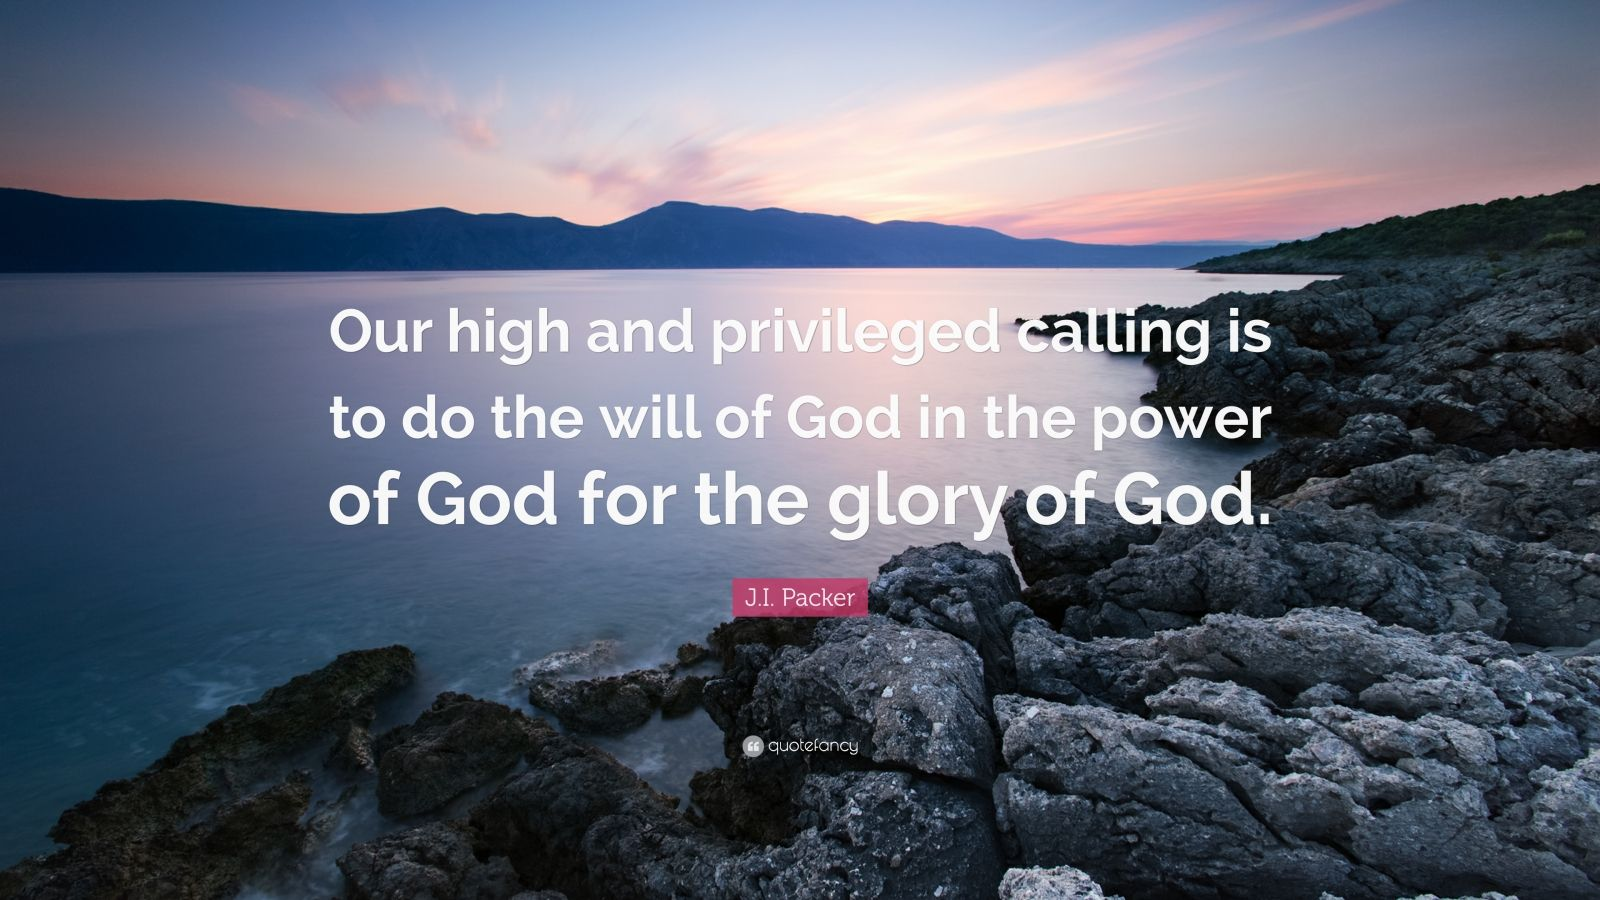 """J.I. Packer Quote: """"Our high and privileged calling is to do the will of God in the power of God for the glory of God."""""""